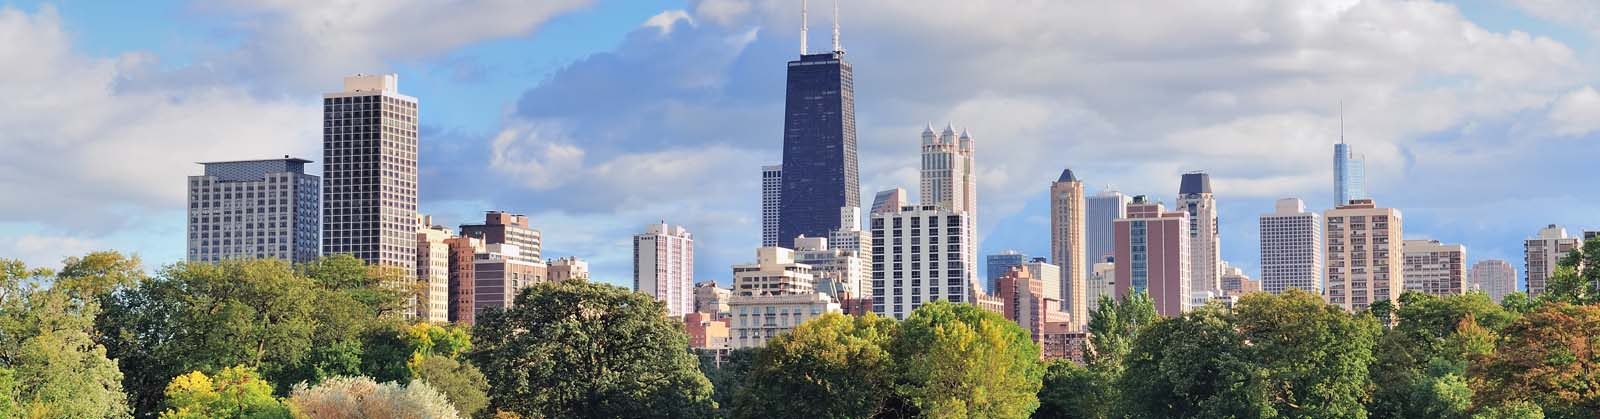 How to Pack Lightly for Chicago: tips